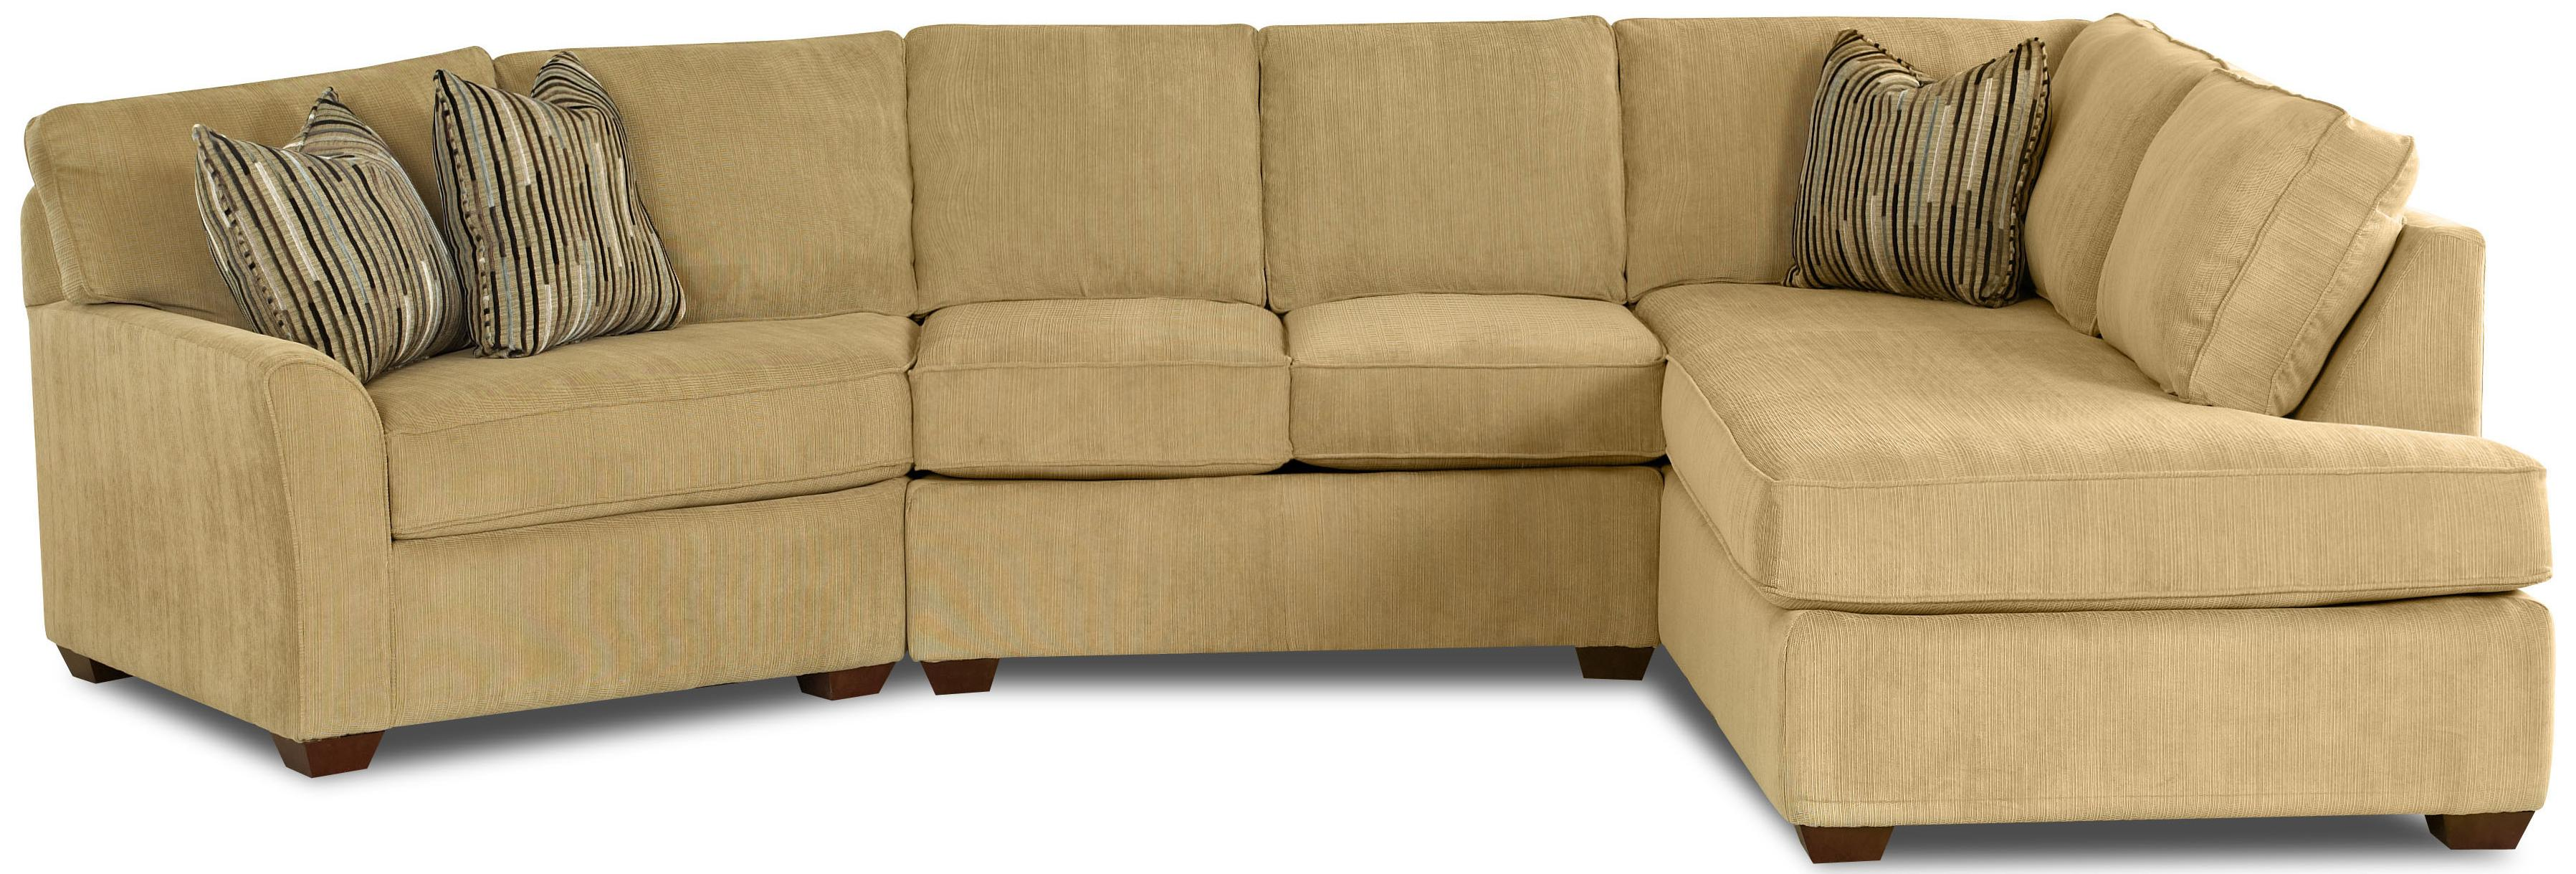 Klaussner Sectional Sofa klaussner hybrid sectional sofa with left